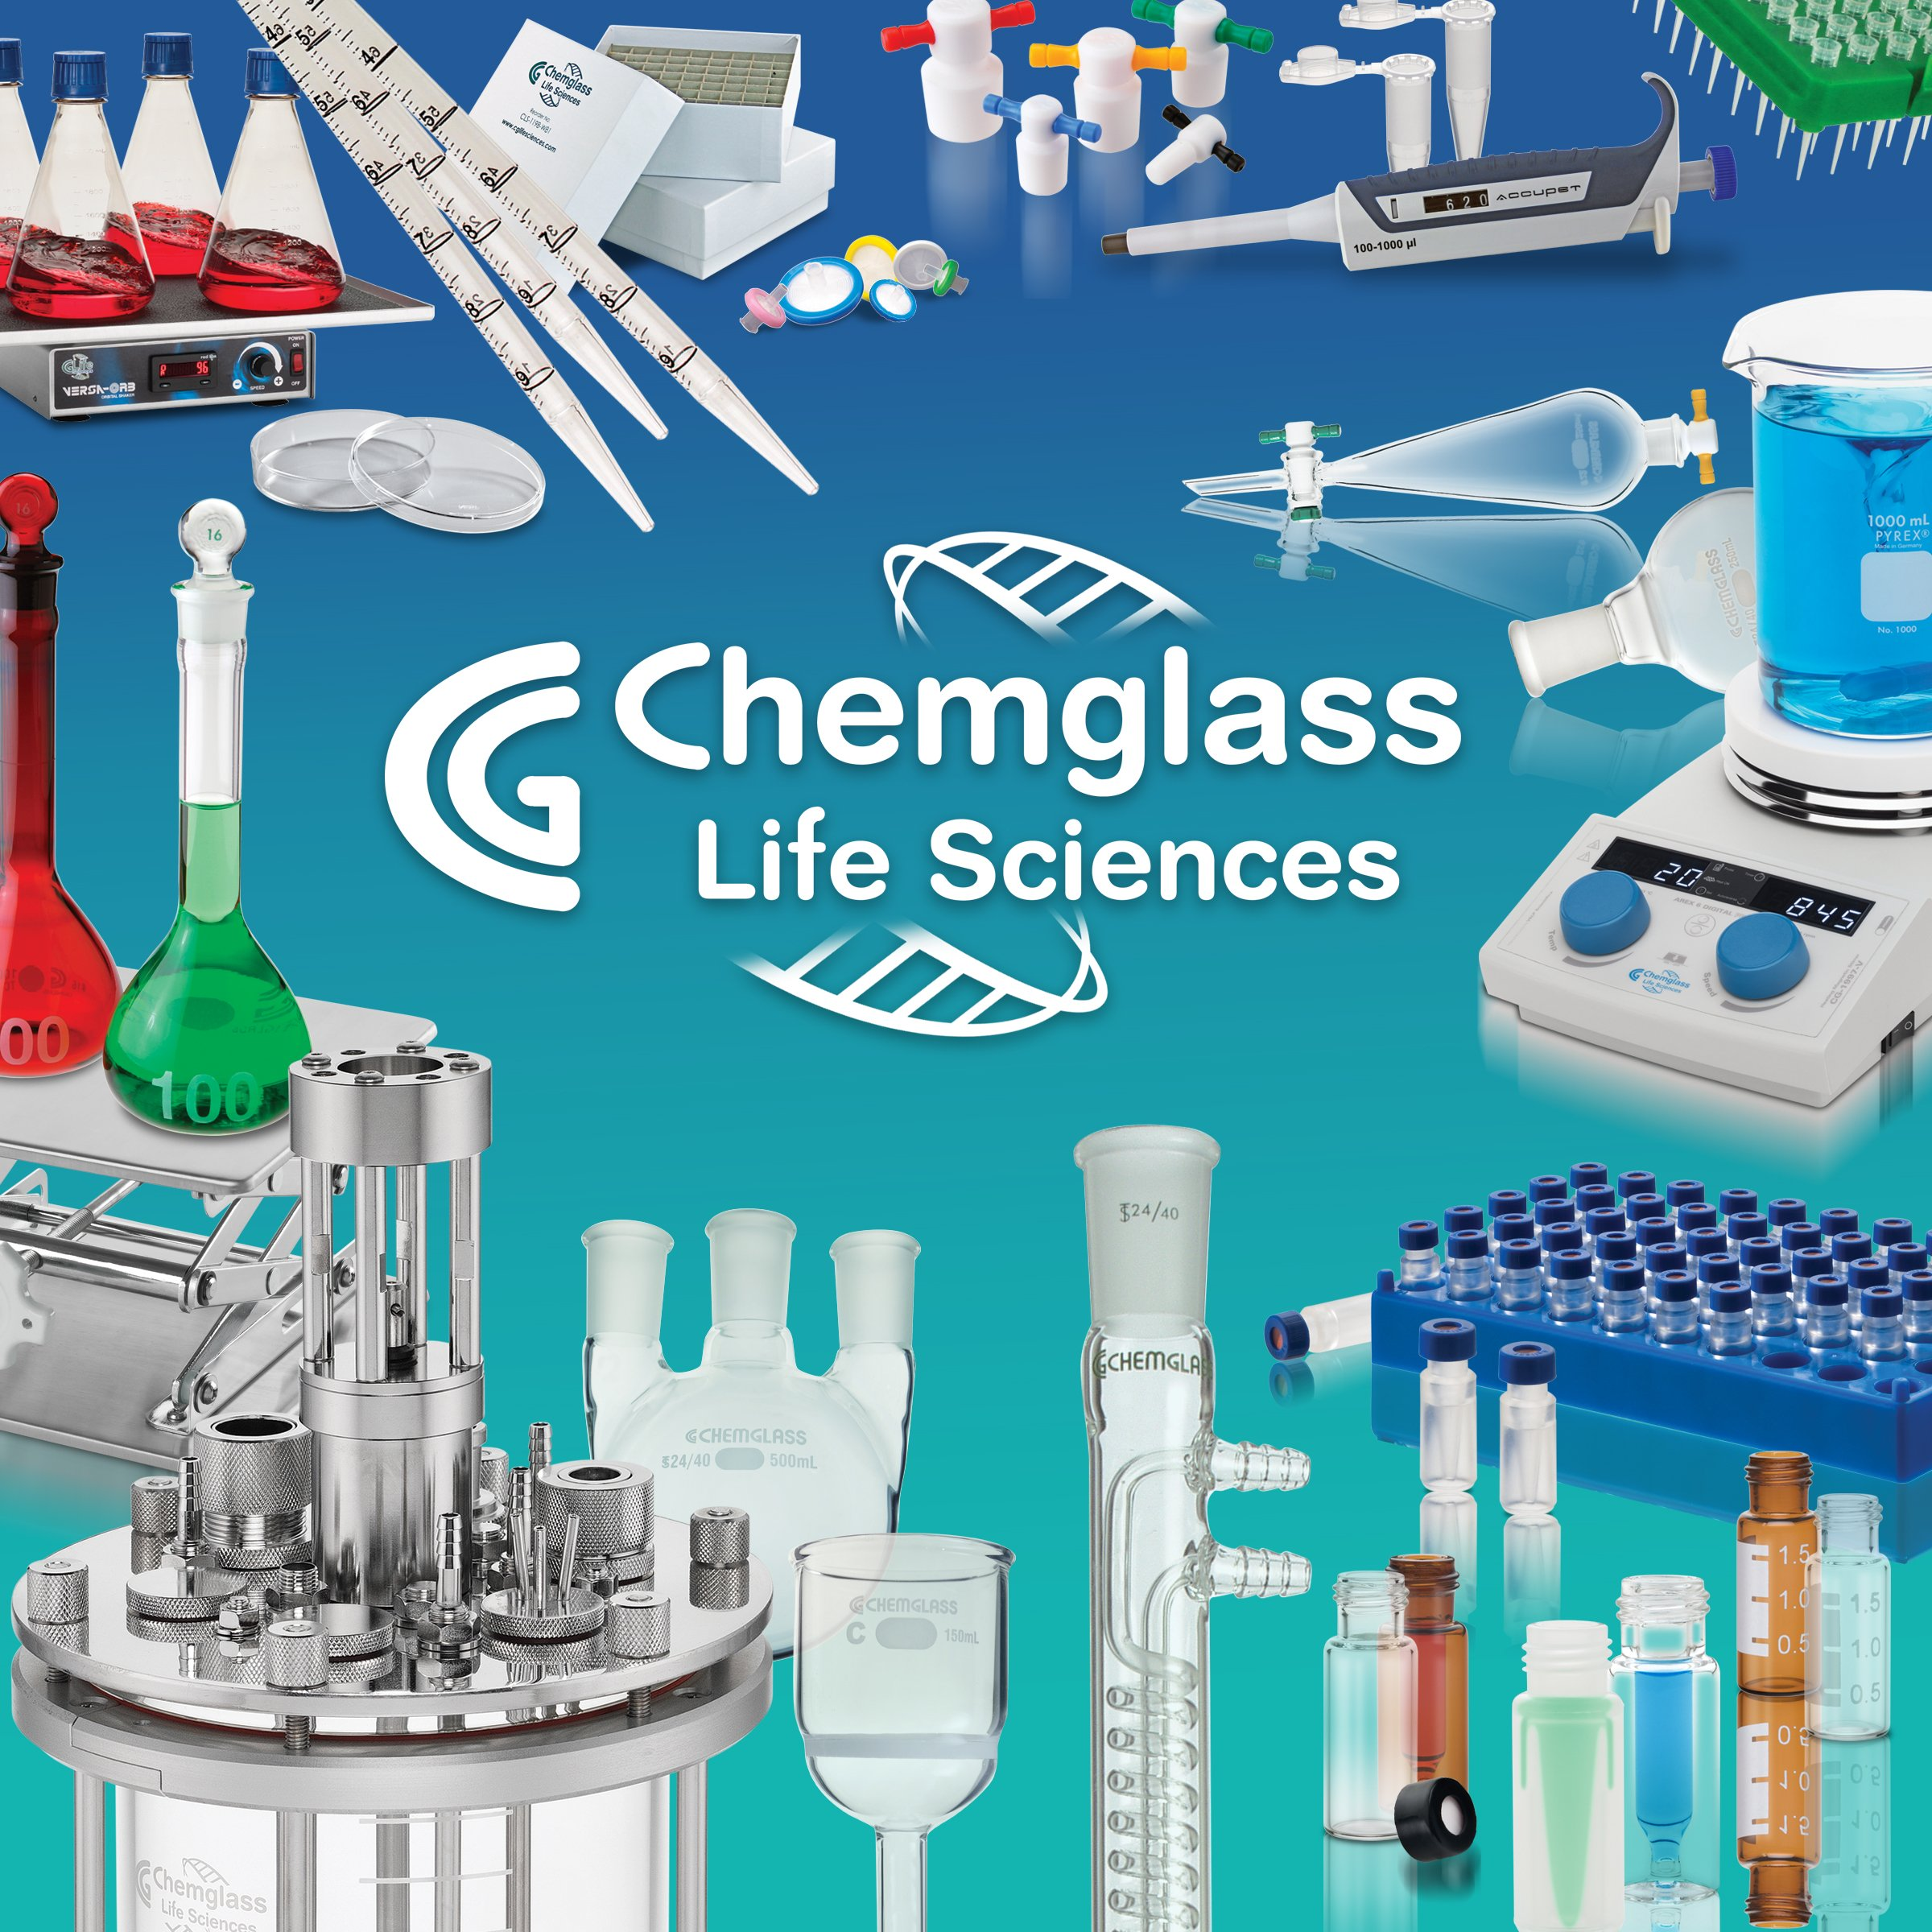 Save 10% your next purchase of $250 or more on select Chemglass products Use Promo Code: NETA-2019 when ordering  (The cart must ONLY contain Chemglass items)